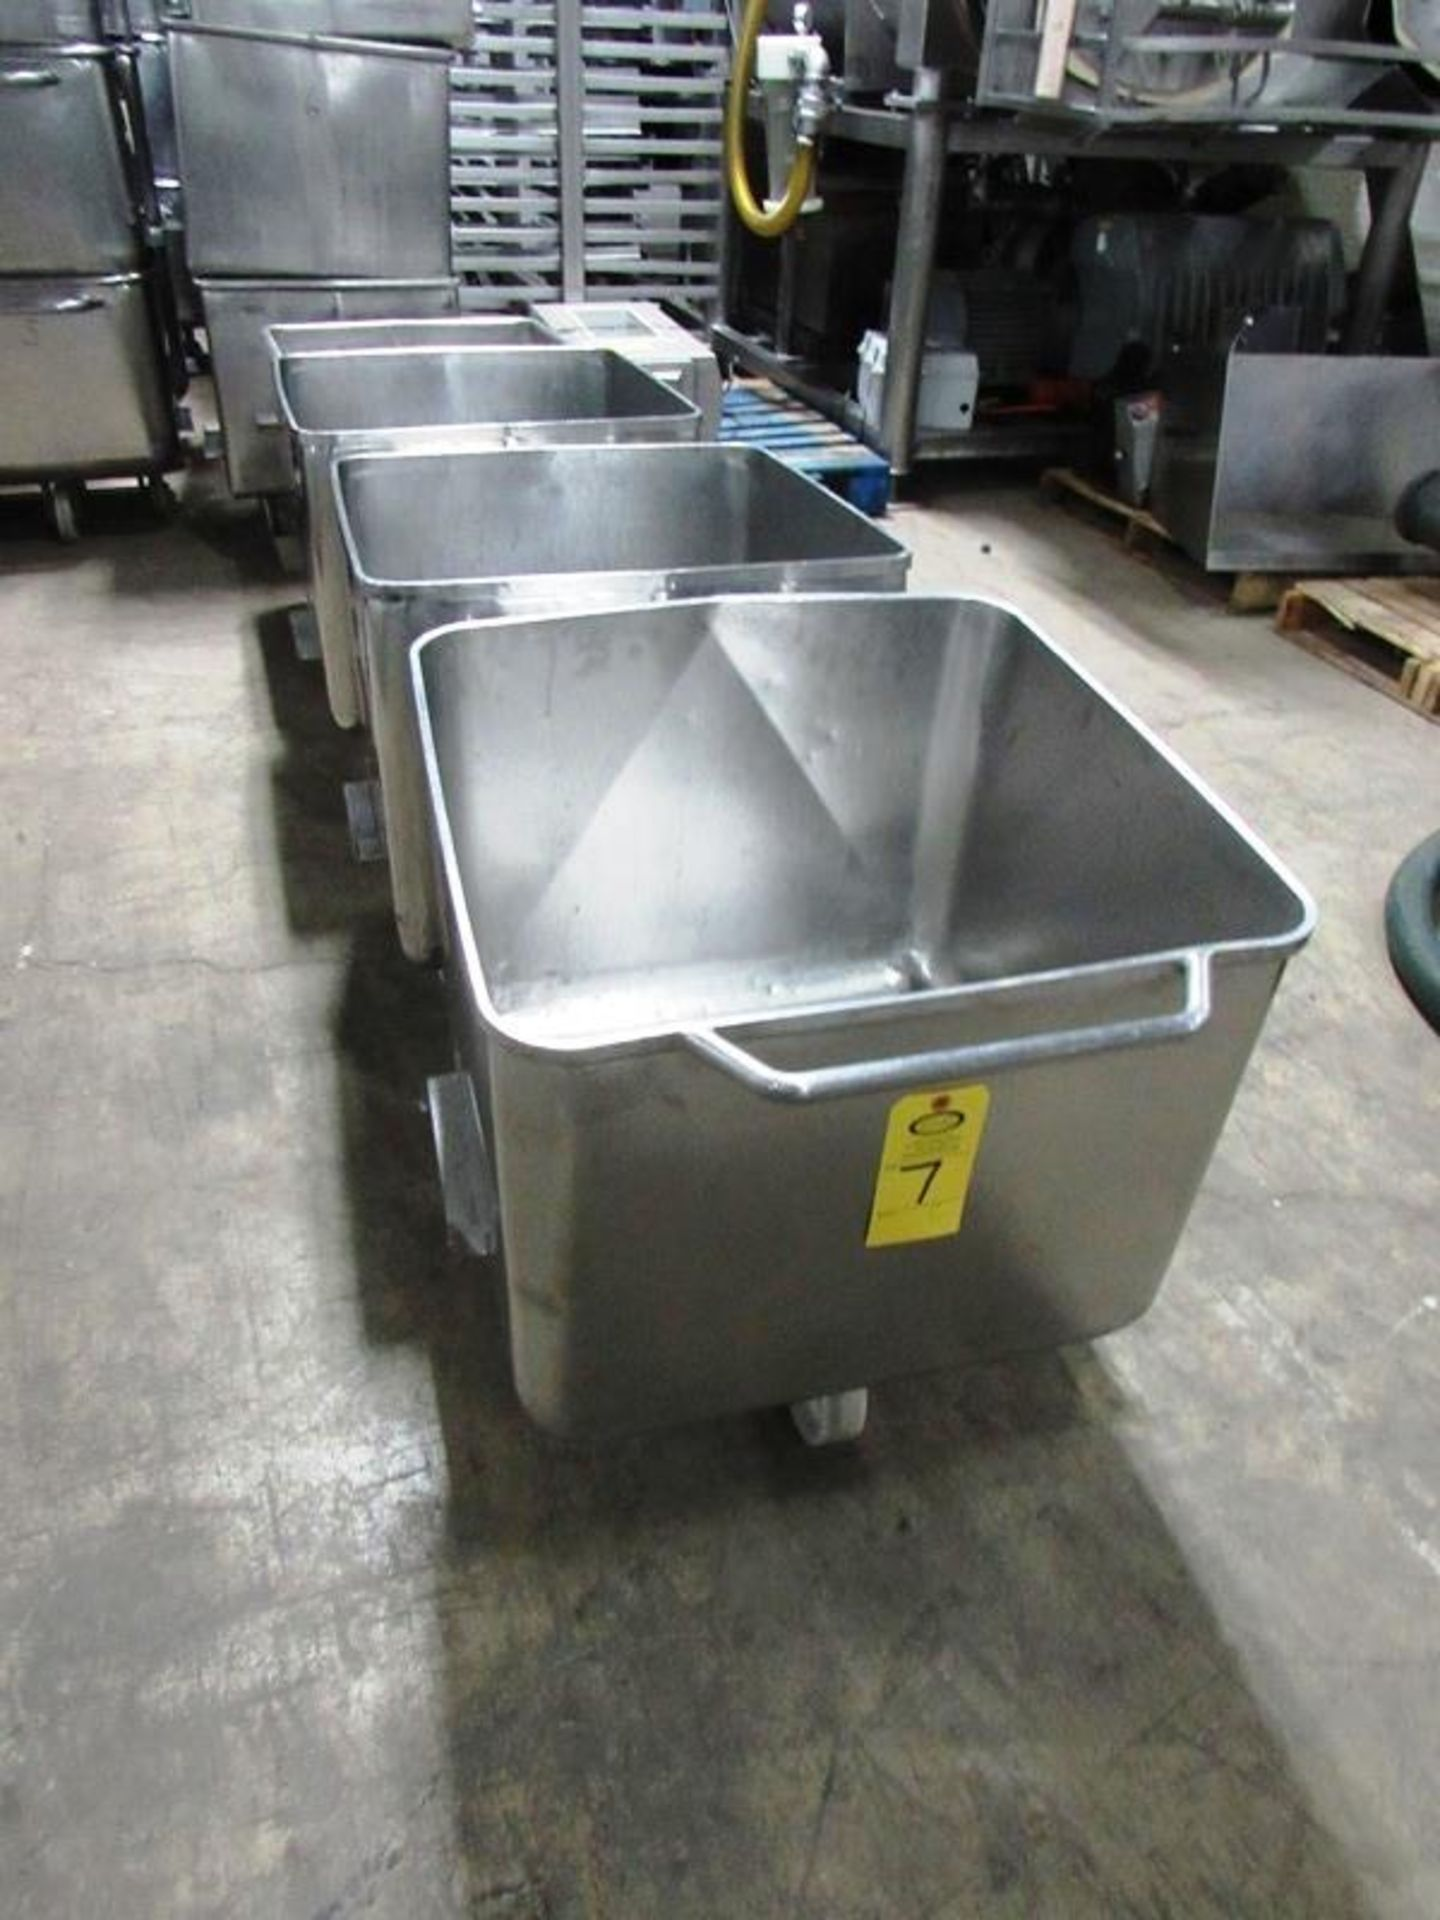 Lot 7 - Stainless Steel Dump Buggies, 400 LB capacity, Euro style